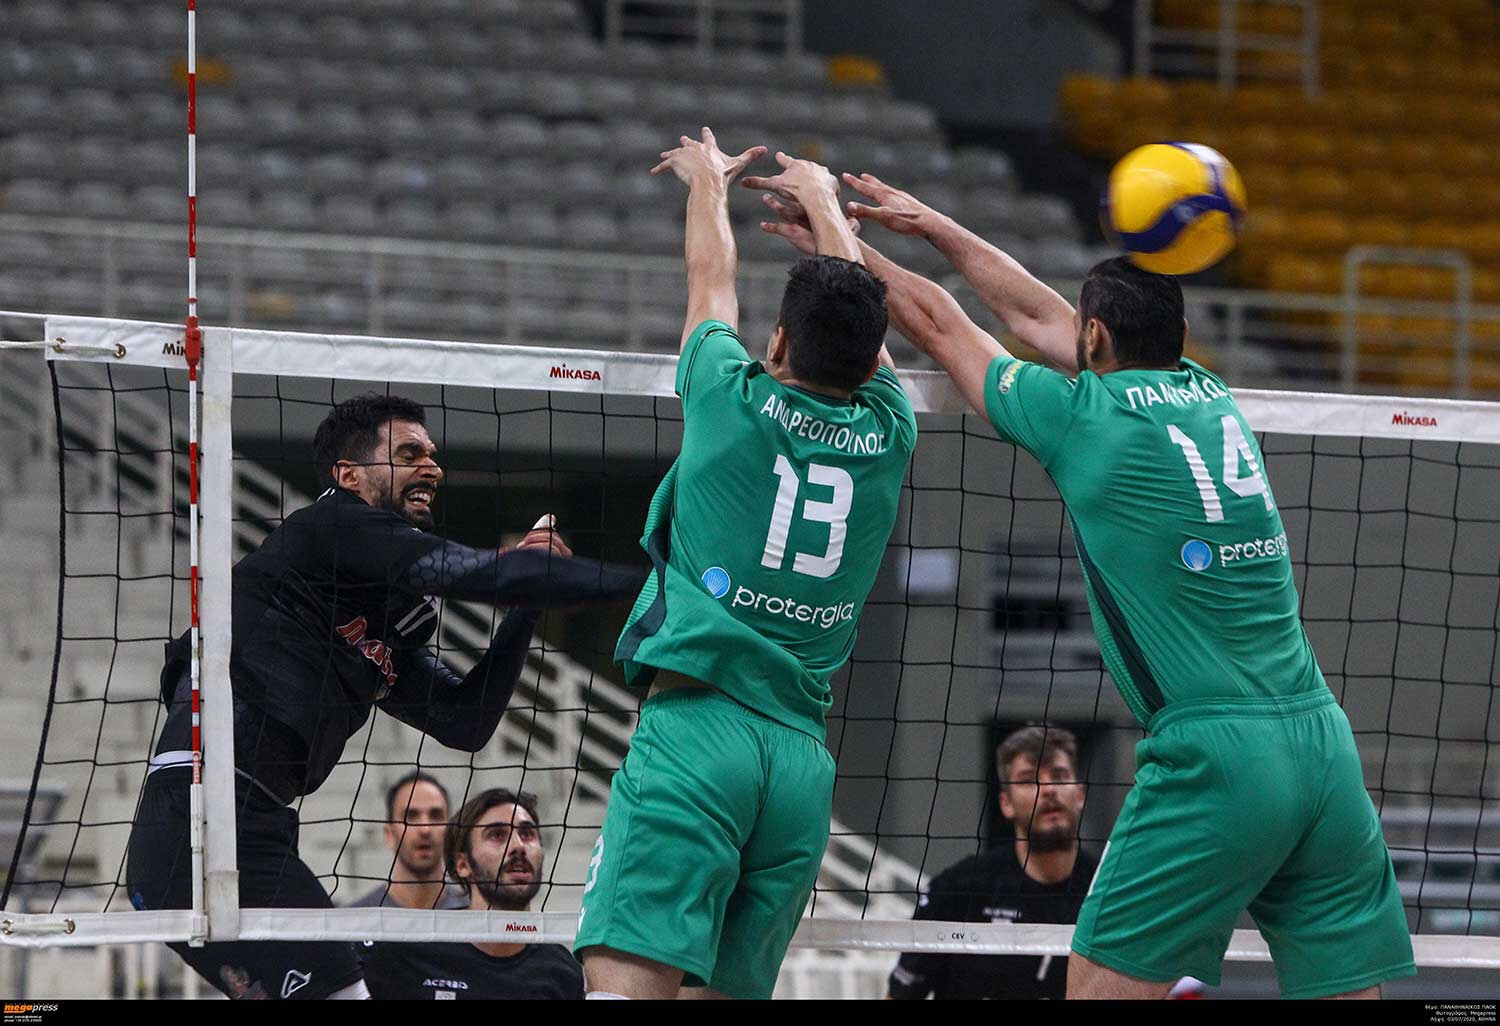 Greece: Panathinaikos didn't give away single set to PAOK, the qualification to the final will be determined on Sunday!